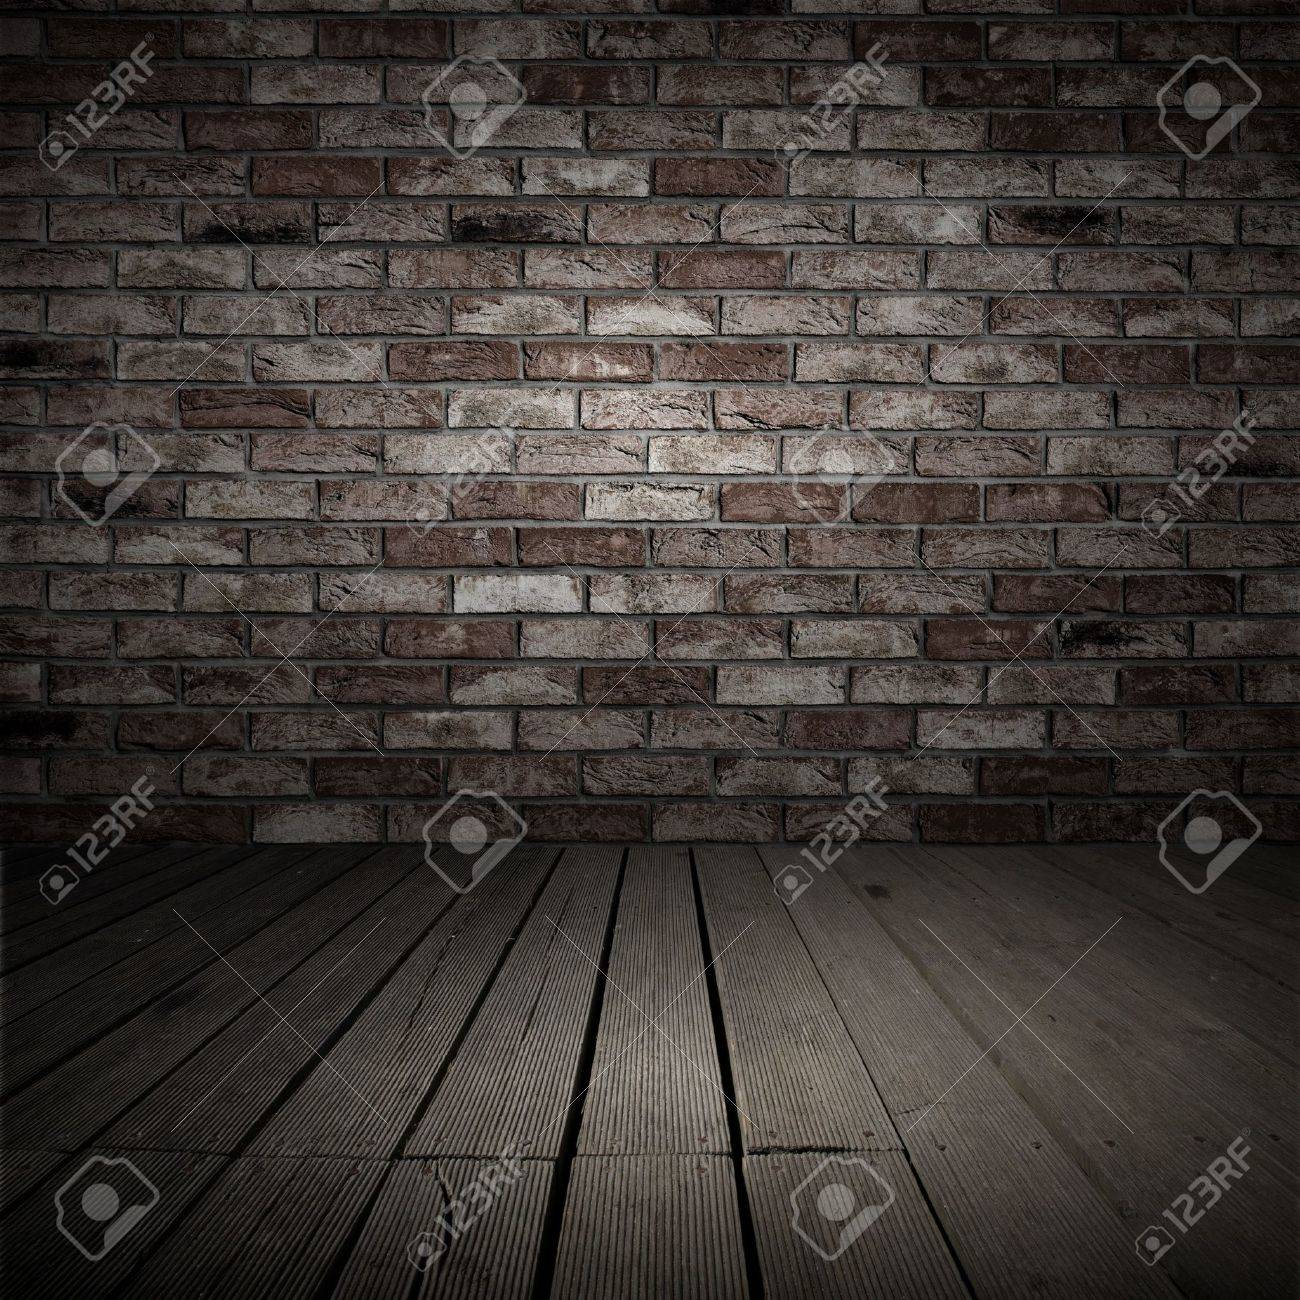 Backgroud of brick wall and wood planks in old interior Stock Photo - 11362494